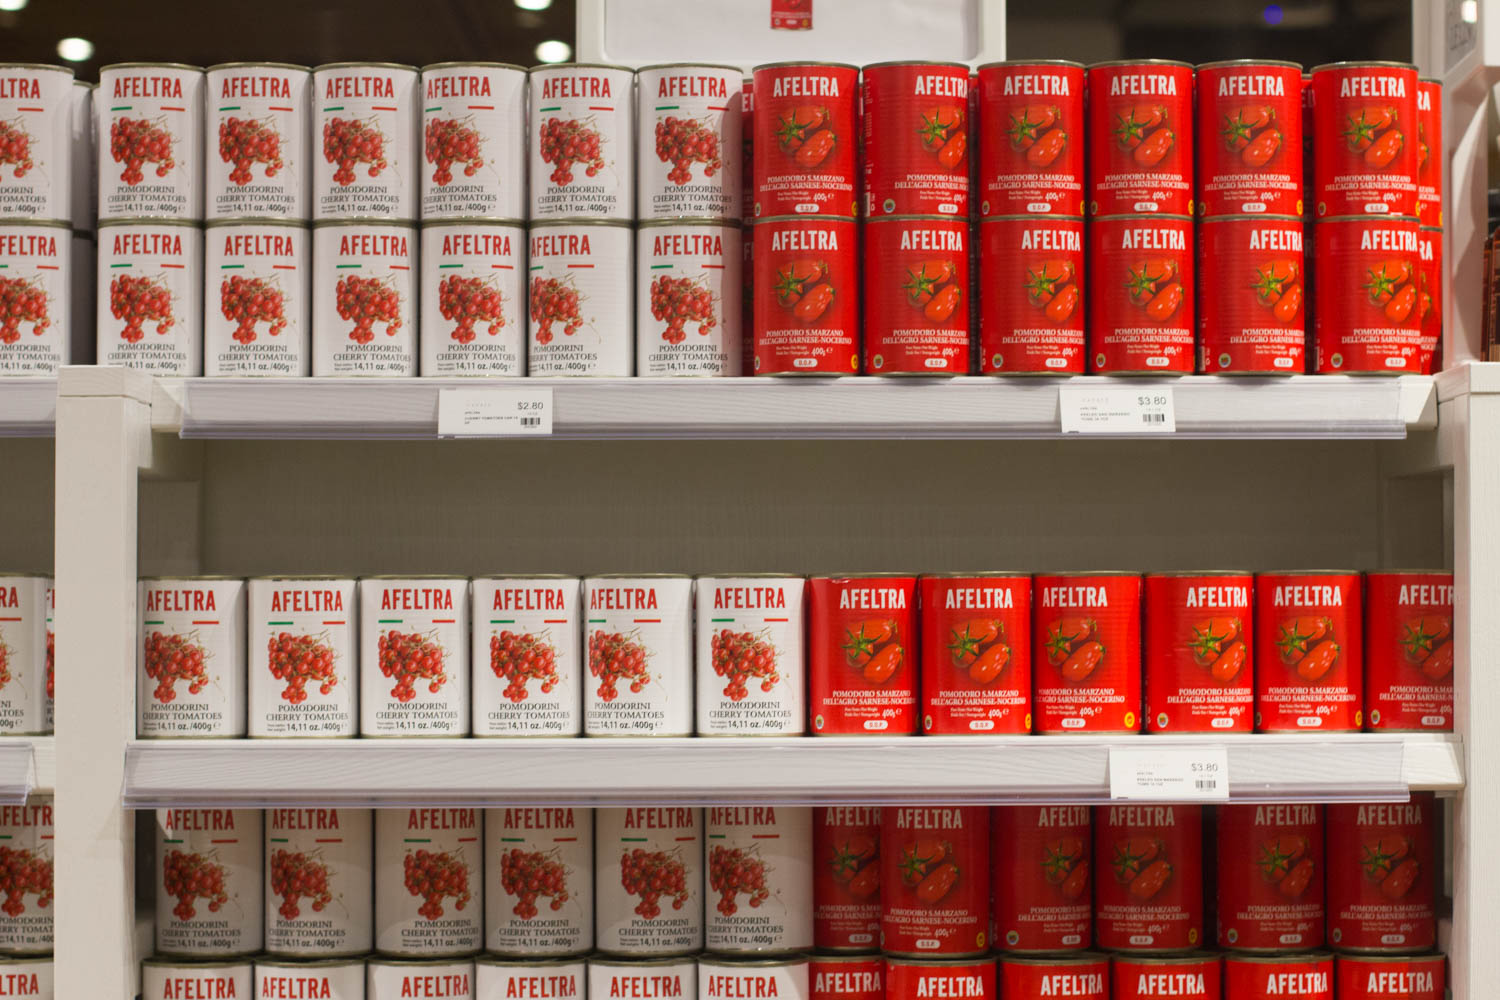 Cans of tomatoes at Eataly.